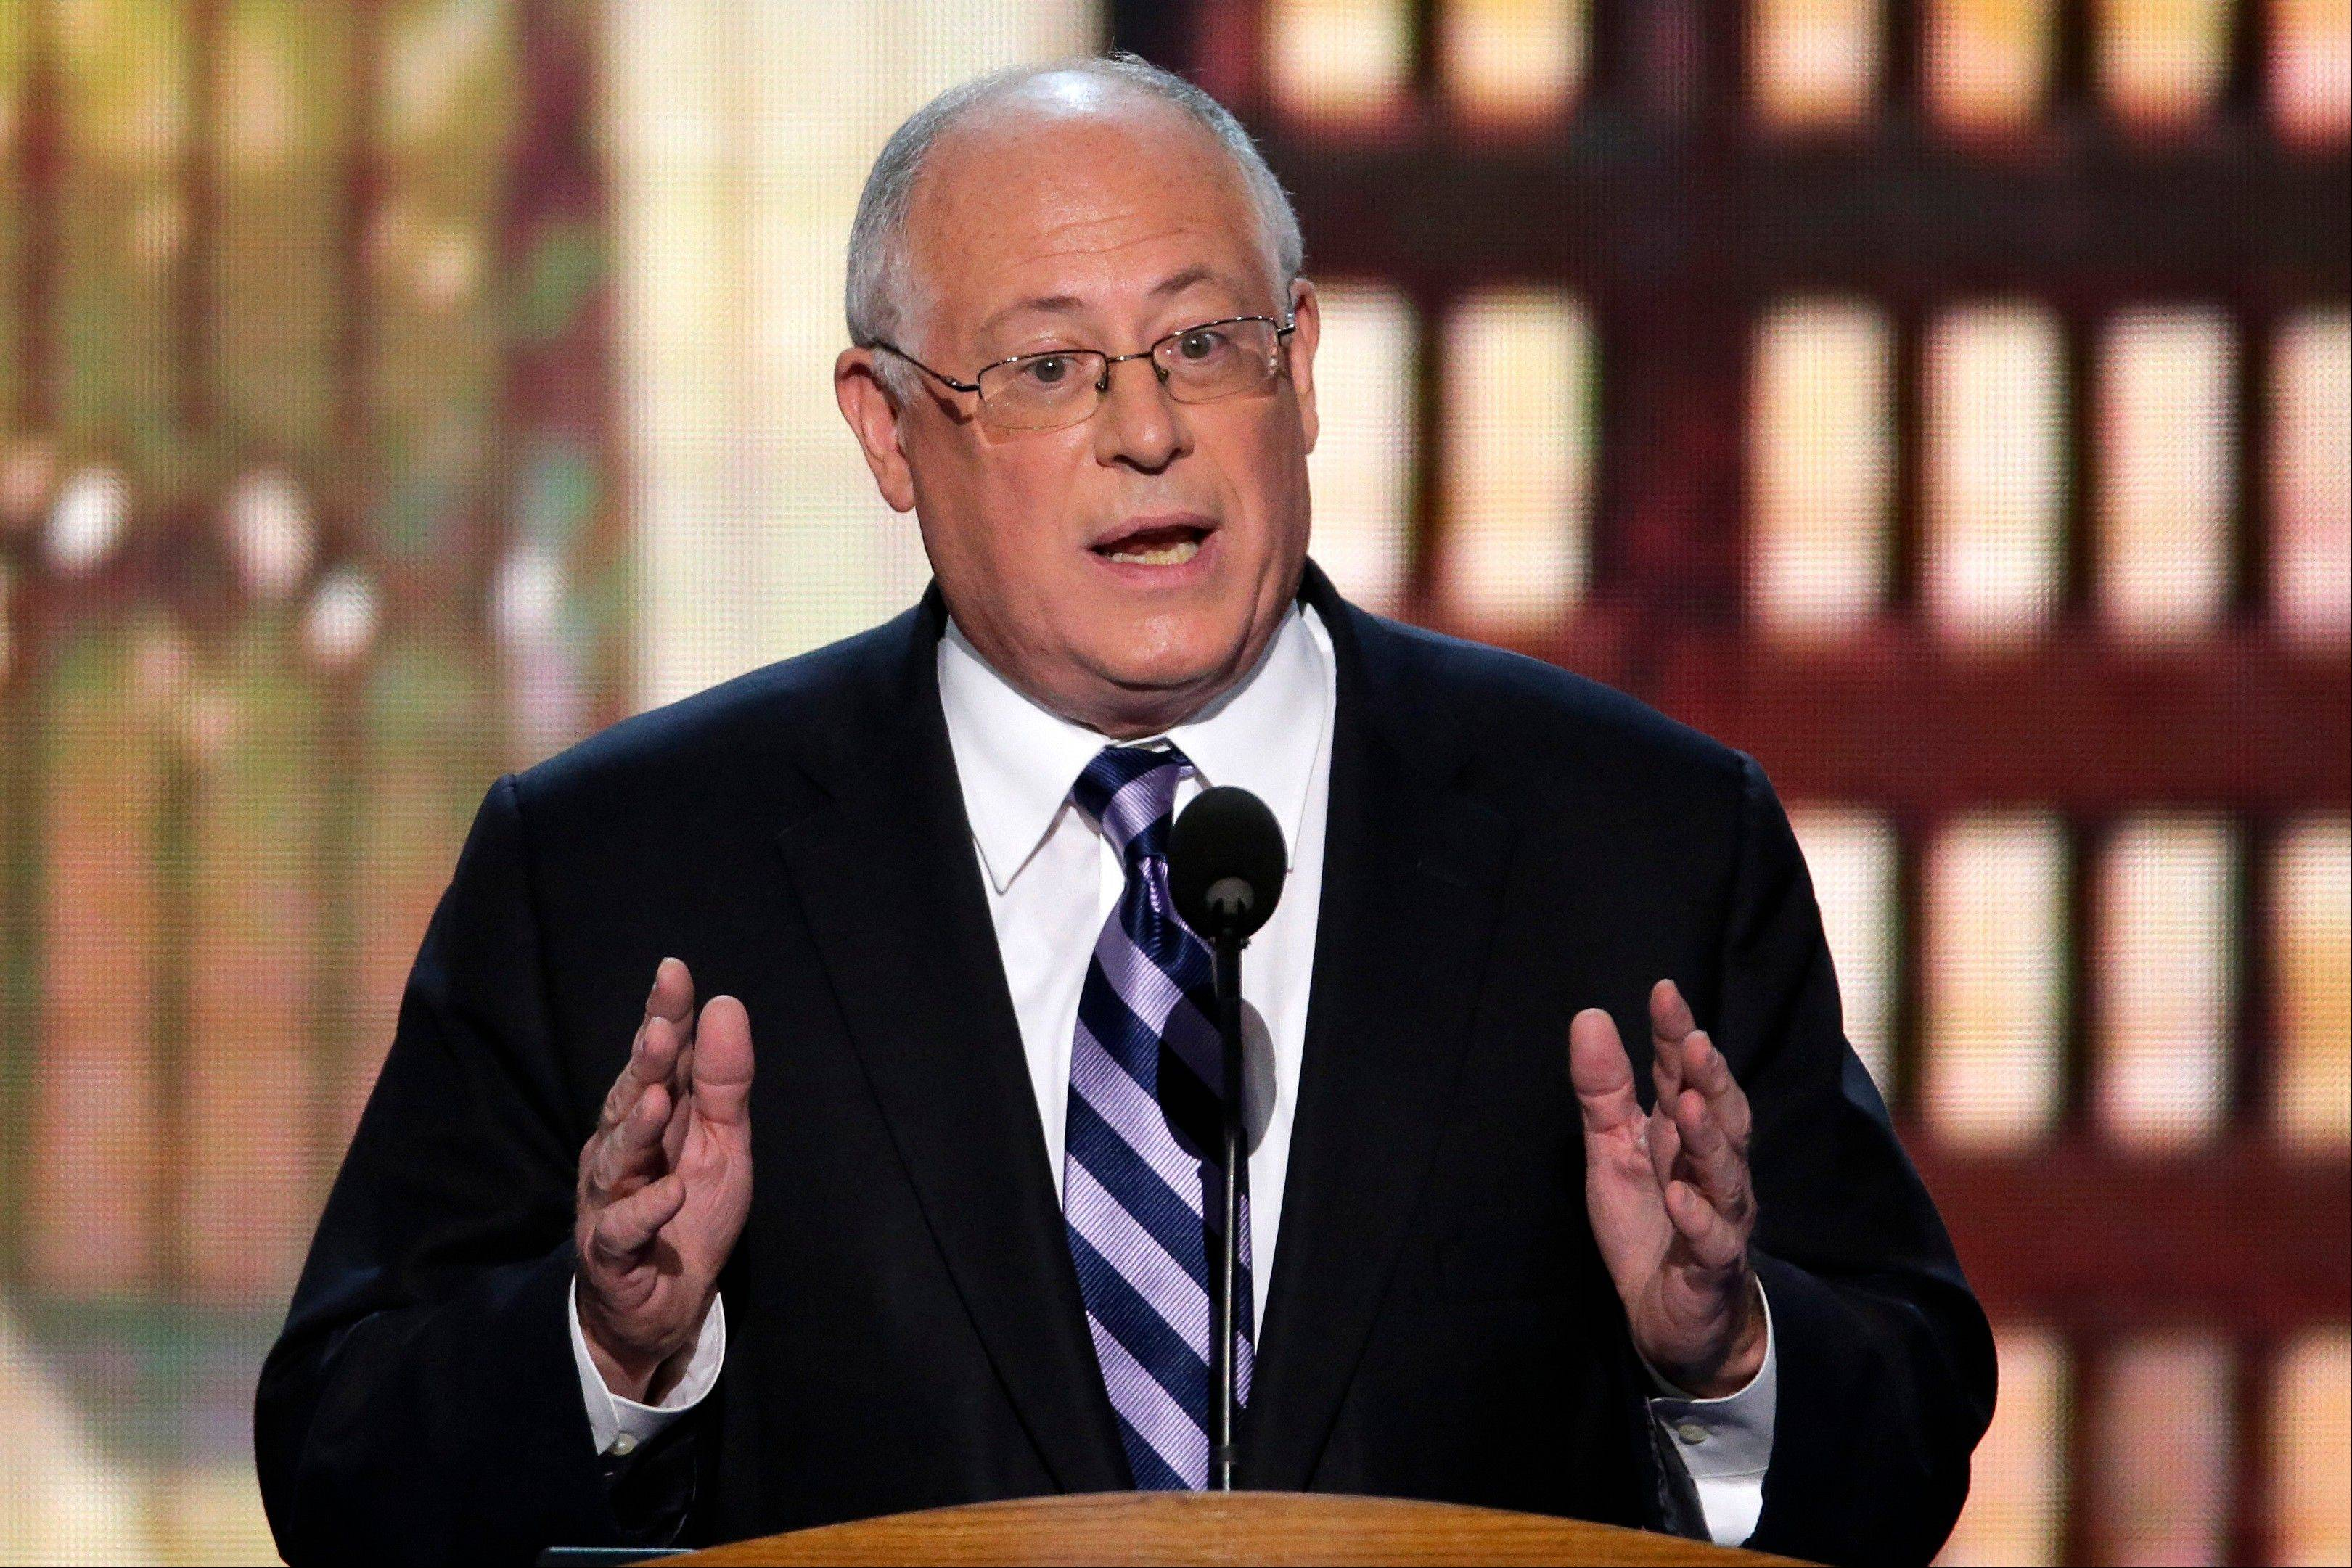 Illinois Gov. Pat Quinn addresses the Democratic National Convention in Charlotte, N.C.